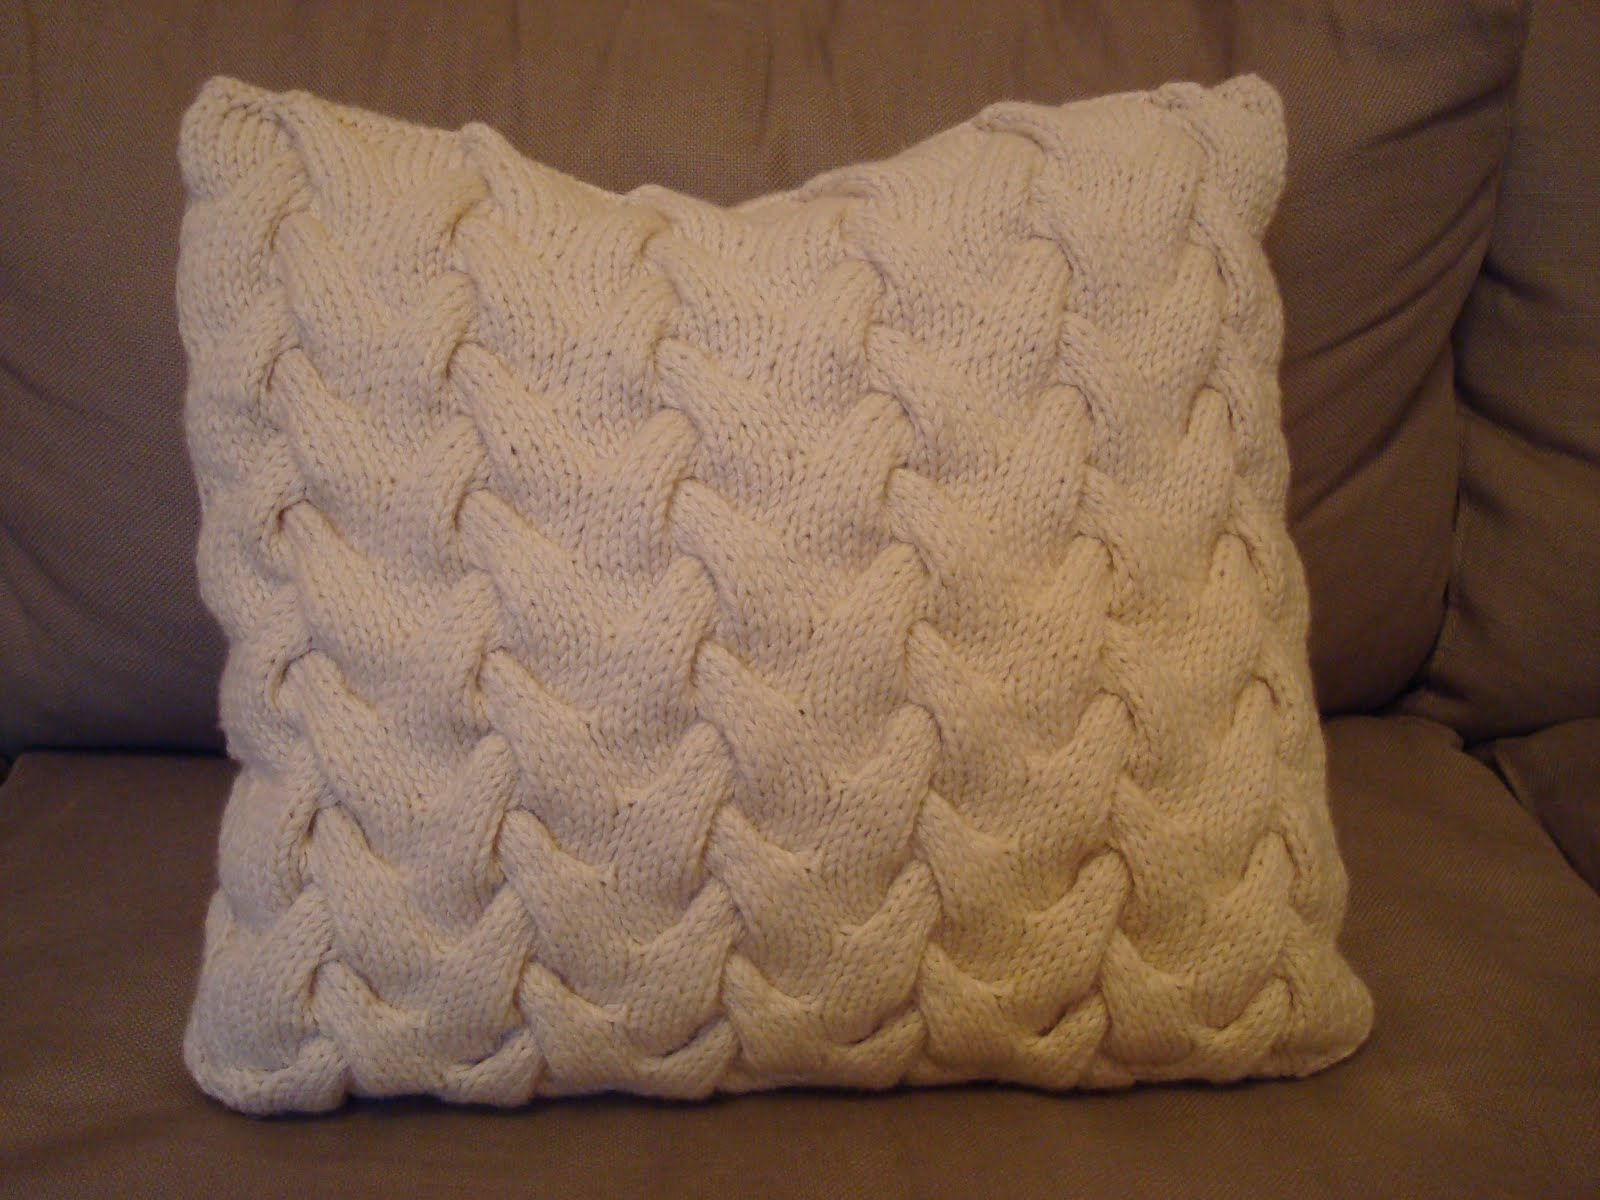 Knitting Patterns For Cushion Covers : next-stitch: cable knitted cushion cover